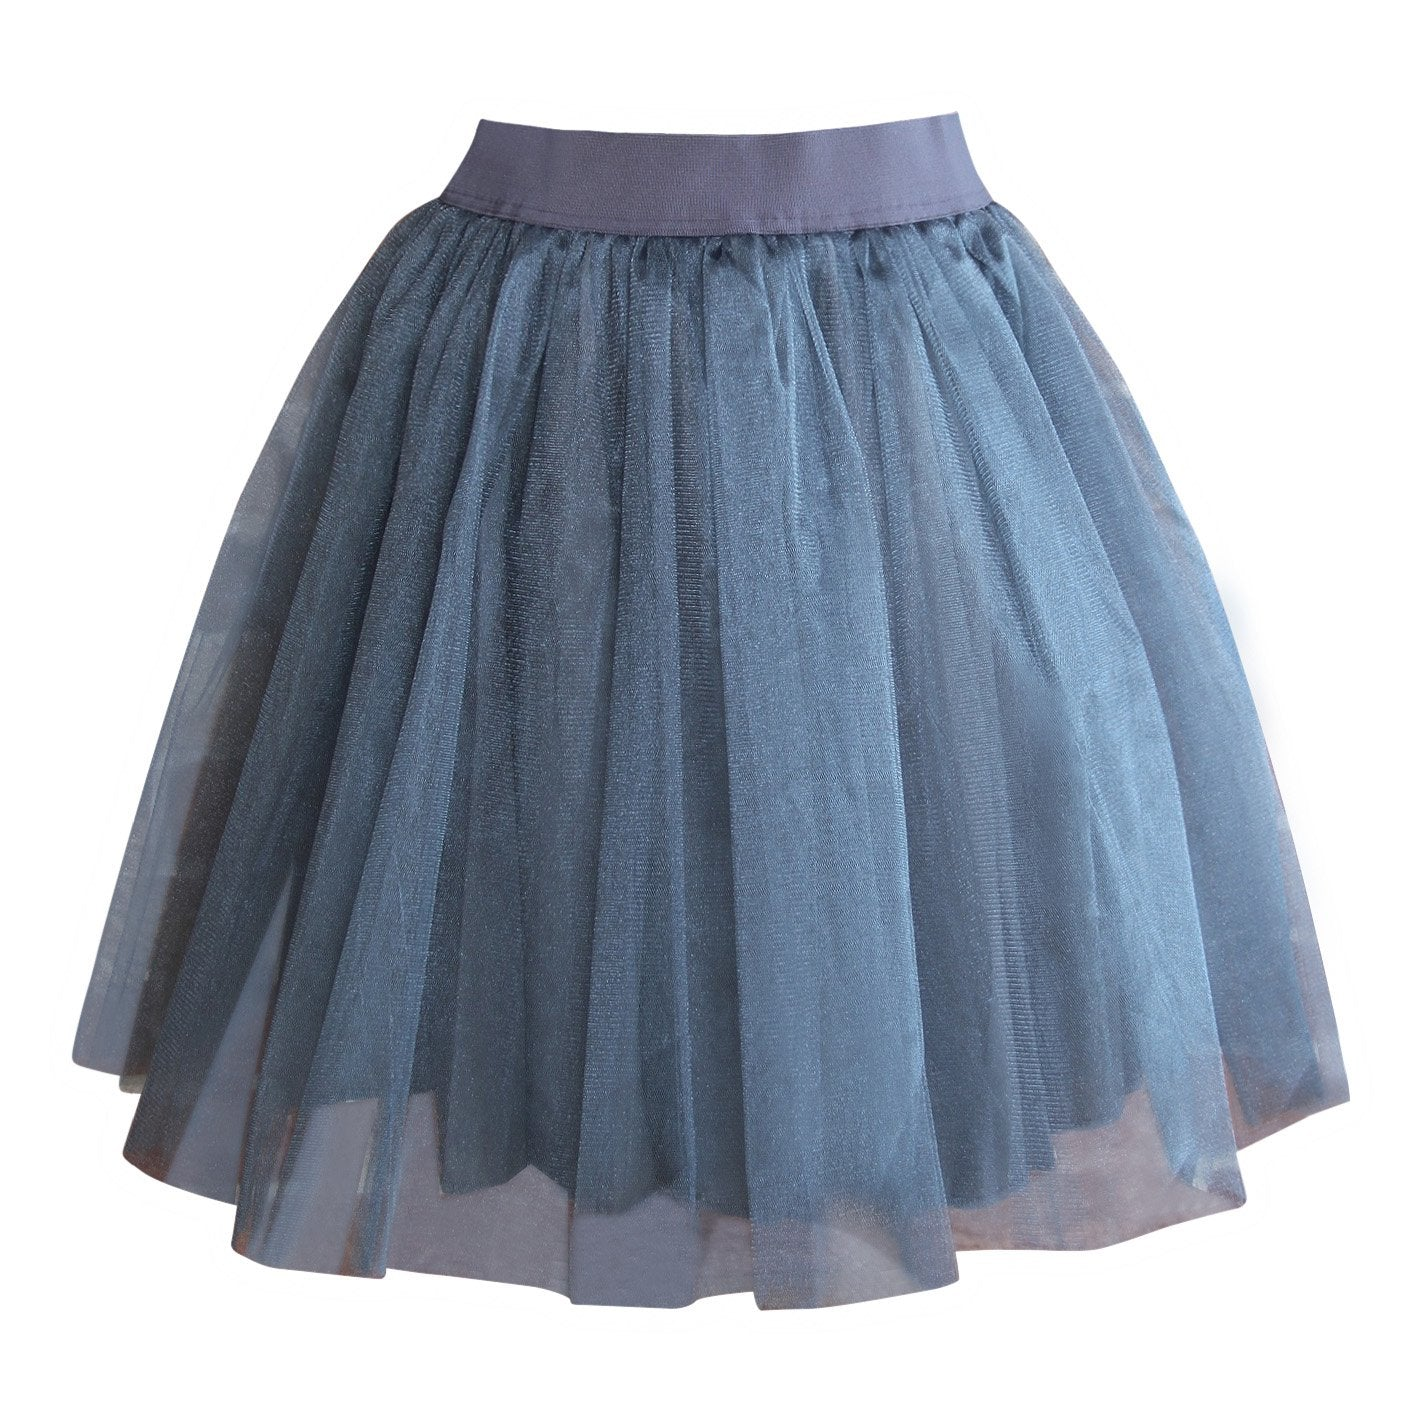 Grey Tulle Skirts - Matching Mum And Daughter Set Skirt